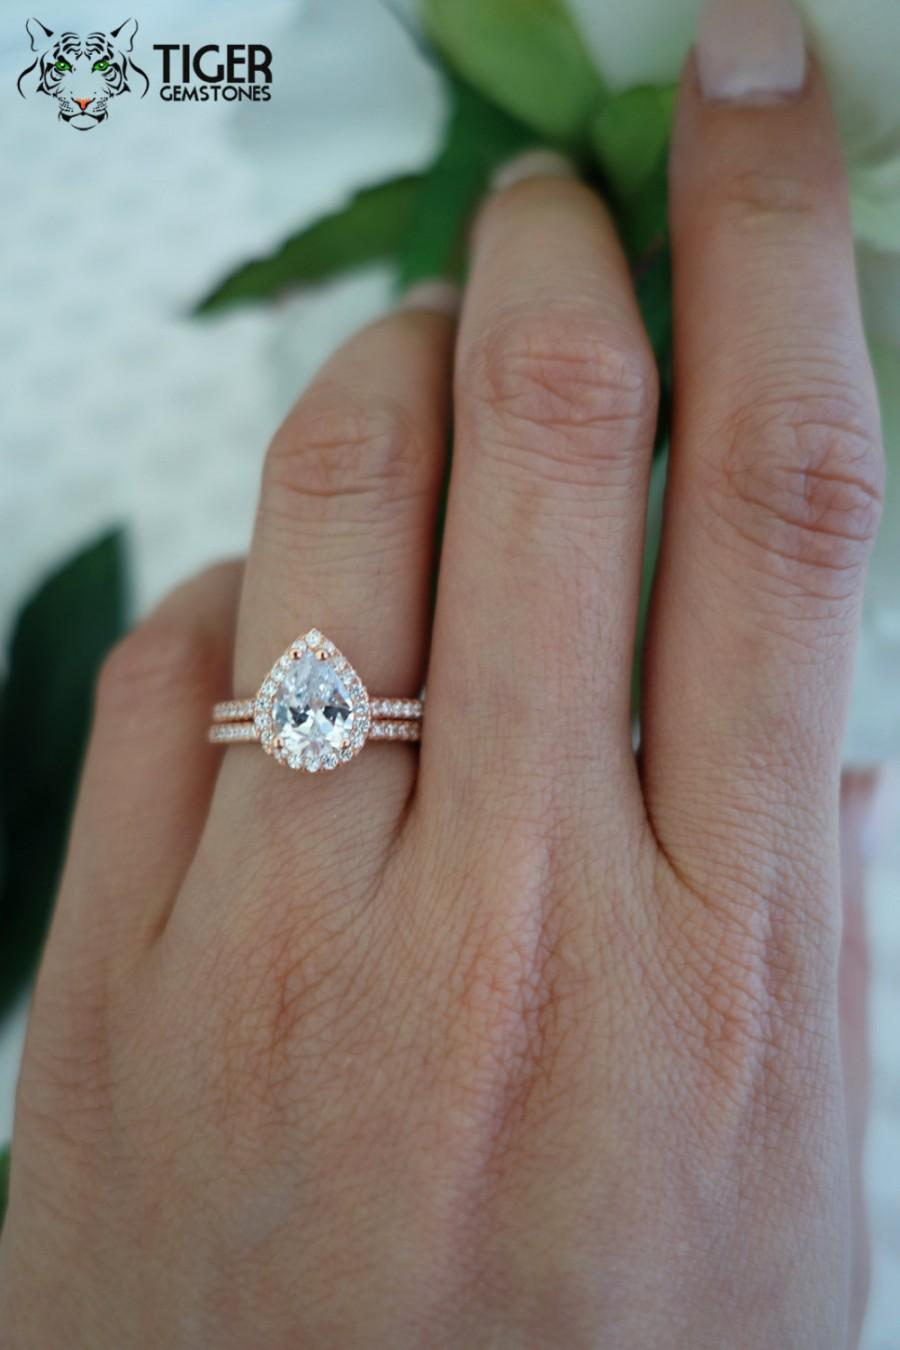 1 5 Carat Pear Cut Halo Engagement Ring Wedding Band Flawless Man